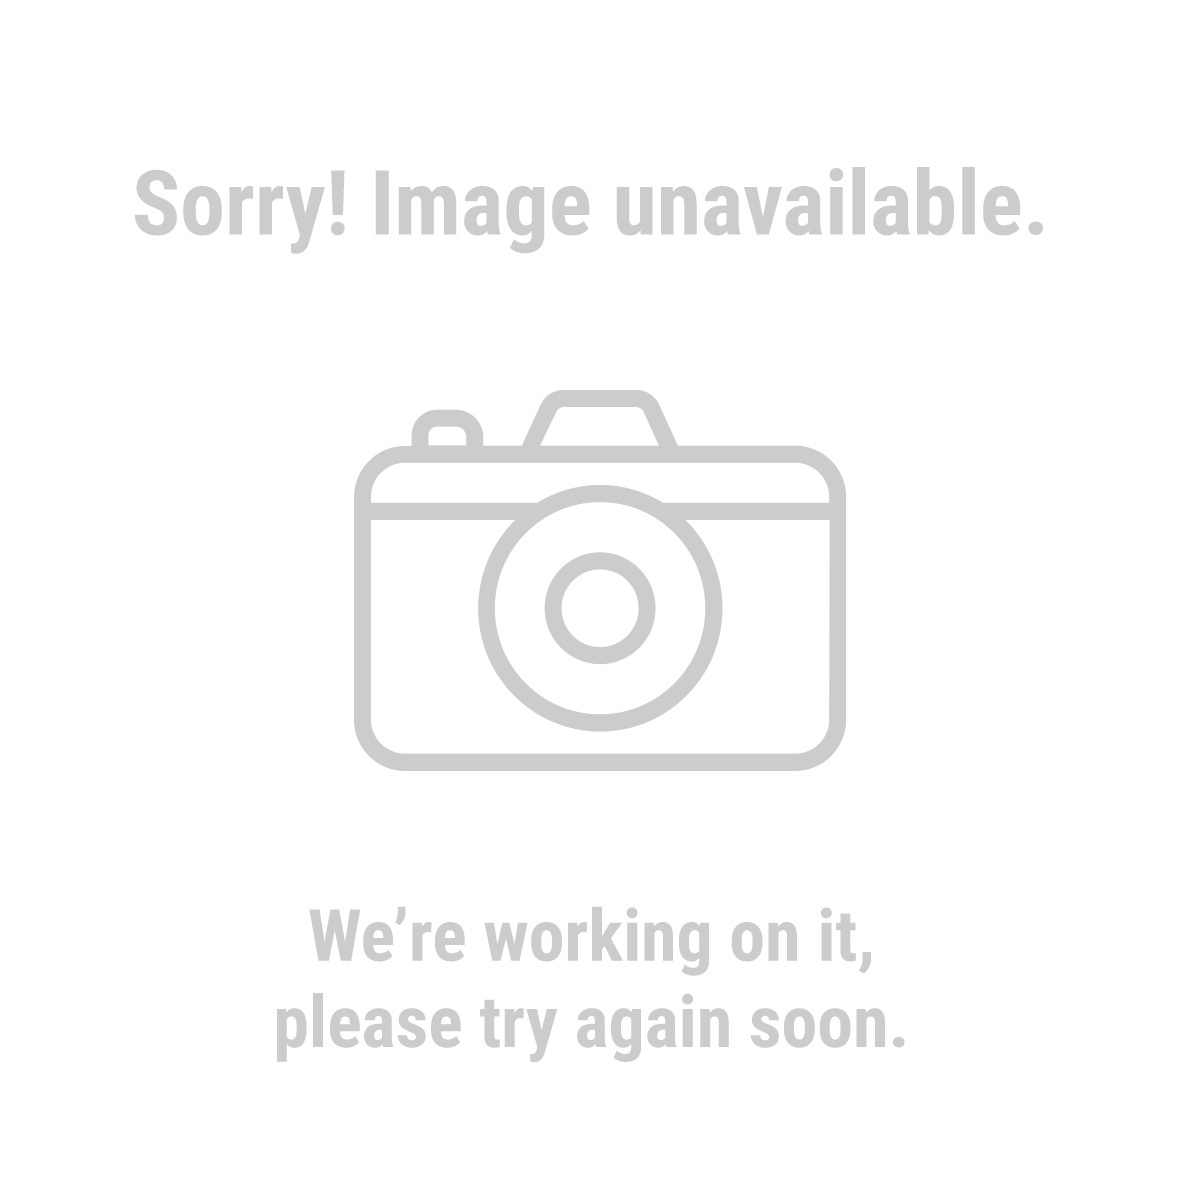 20 Piece Air Compressor Starter Kit